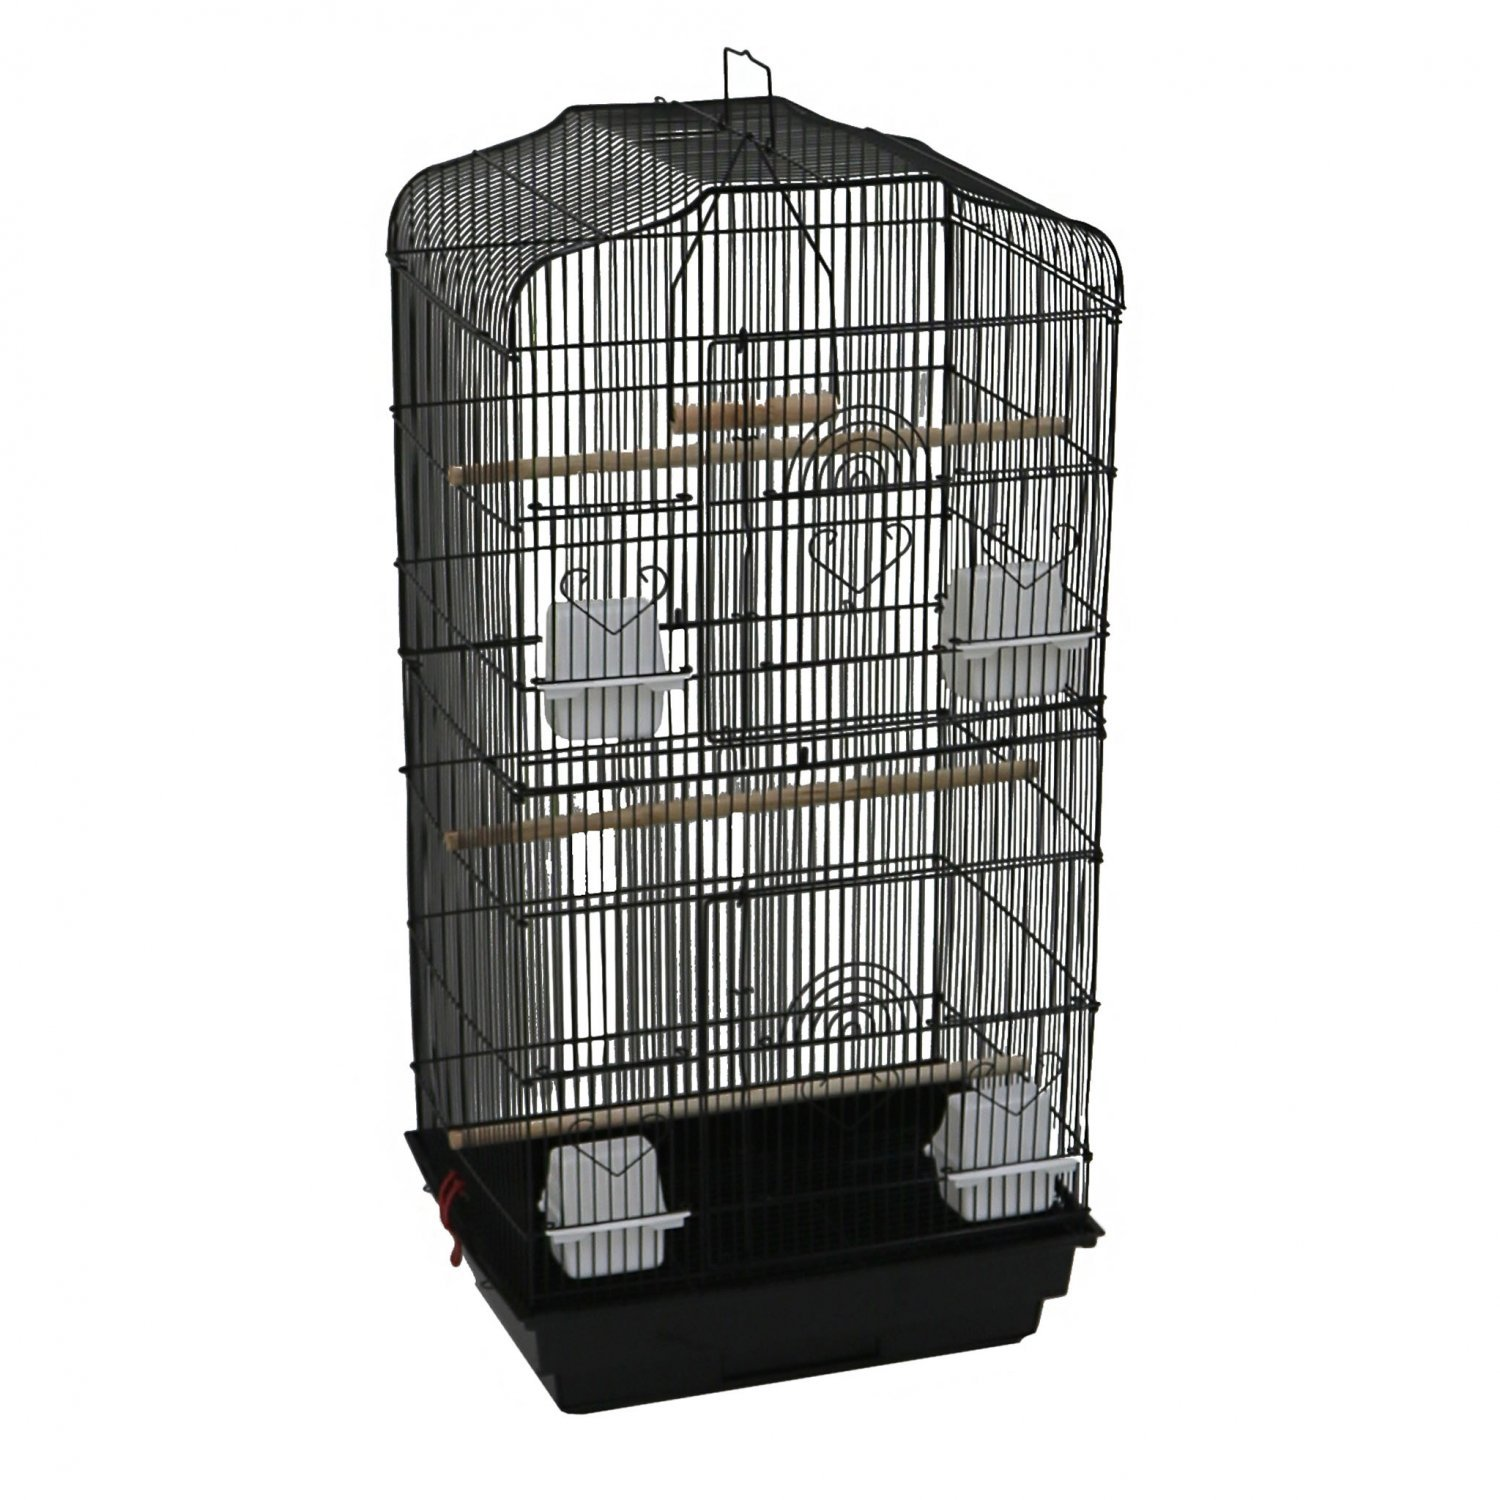 Xl Large Bird Cage Budgie Canary Finch Parrot Birdcage 163